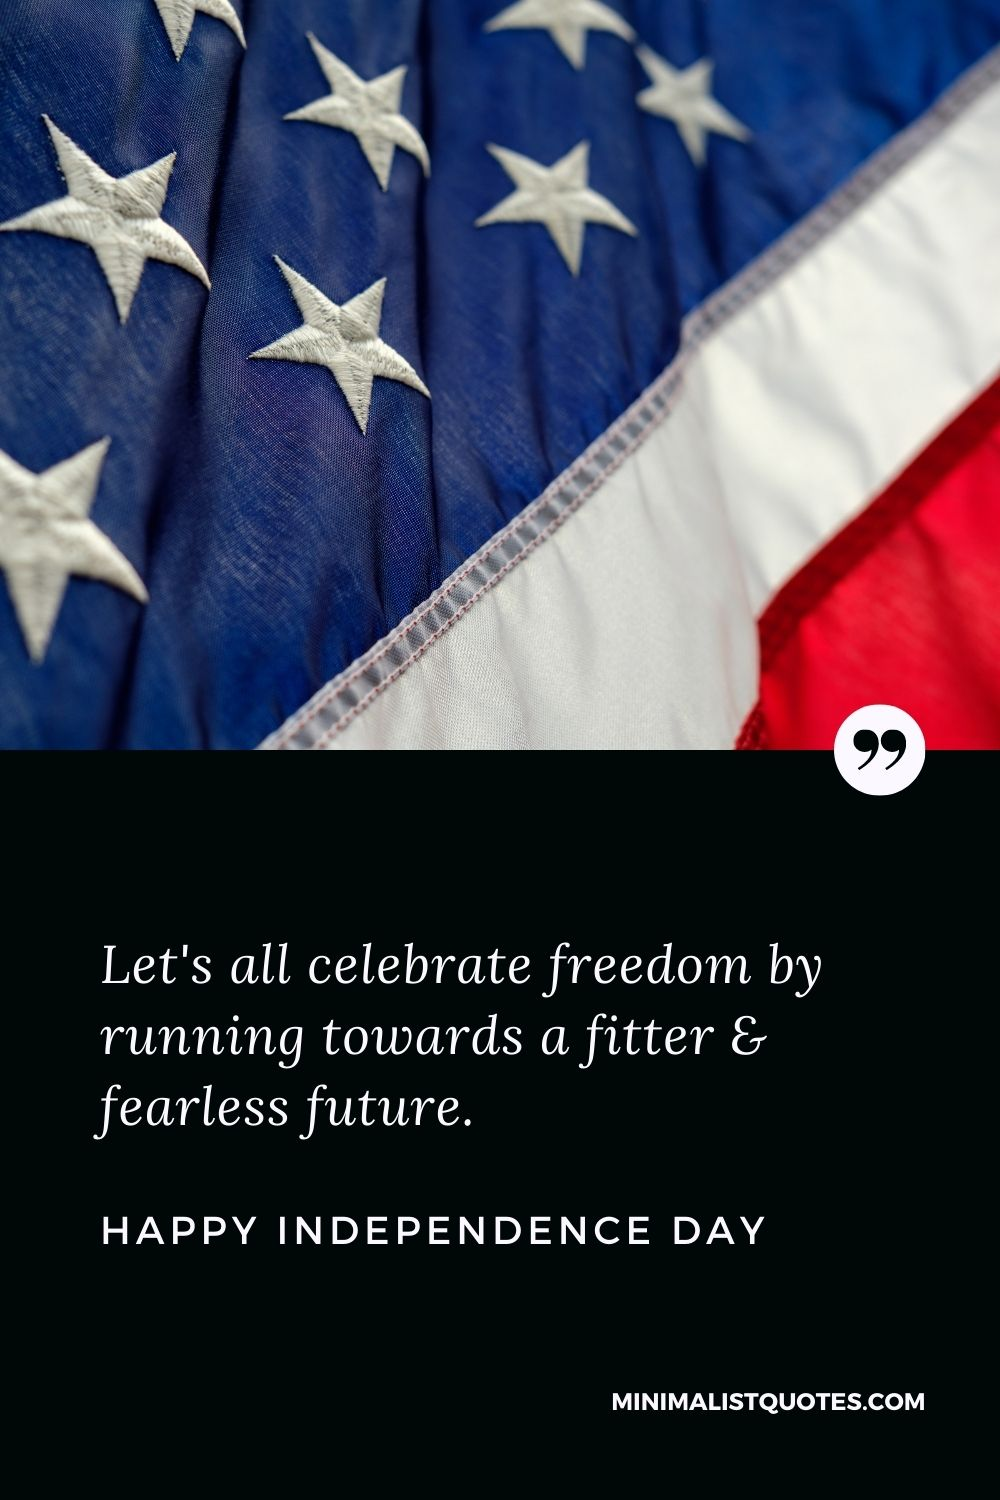 Independence Day Wish & Message With HD Image: Let's all celebrate freedom by running towards a fitter & fearless future. Happy Independence Day!